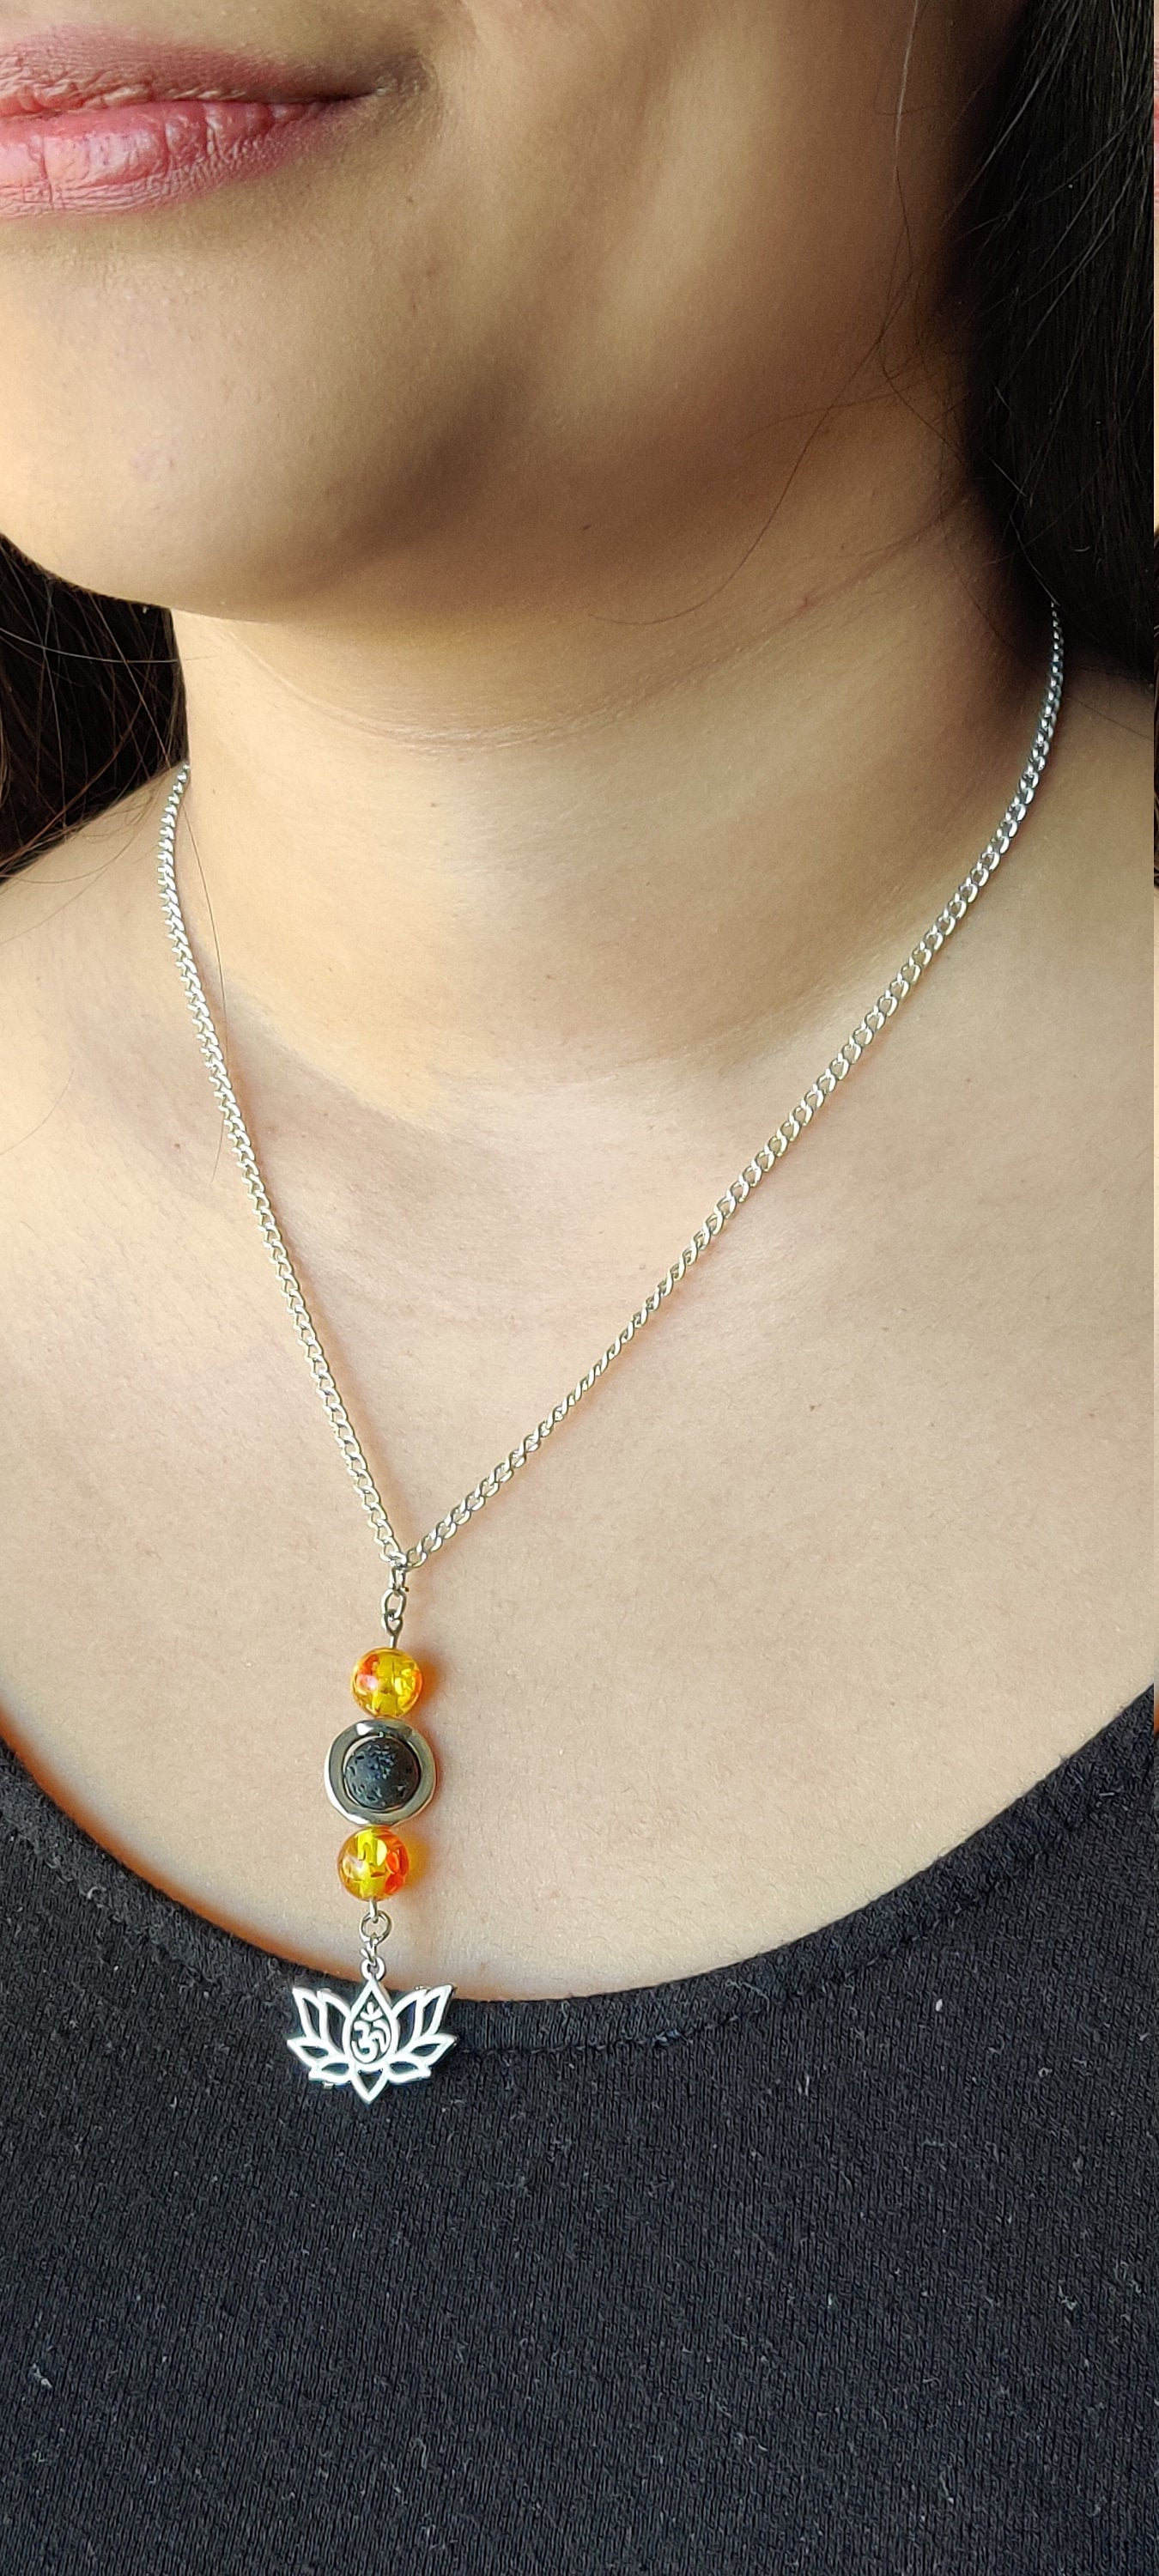 Healing crystals, Chakra jewelry,  Gift for her, Minimalist necklace,  Citrine, Lava bead, 18 inch Silver plated chain, Lotus Charm